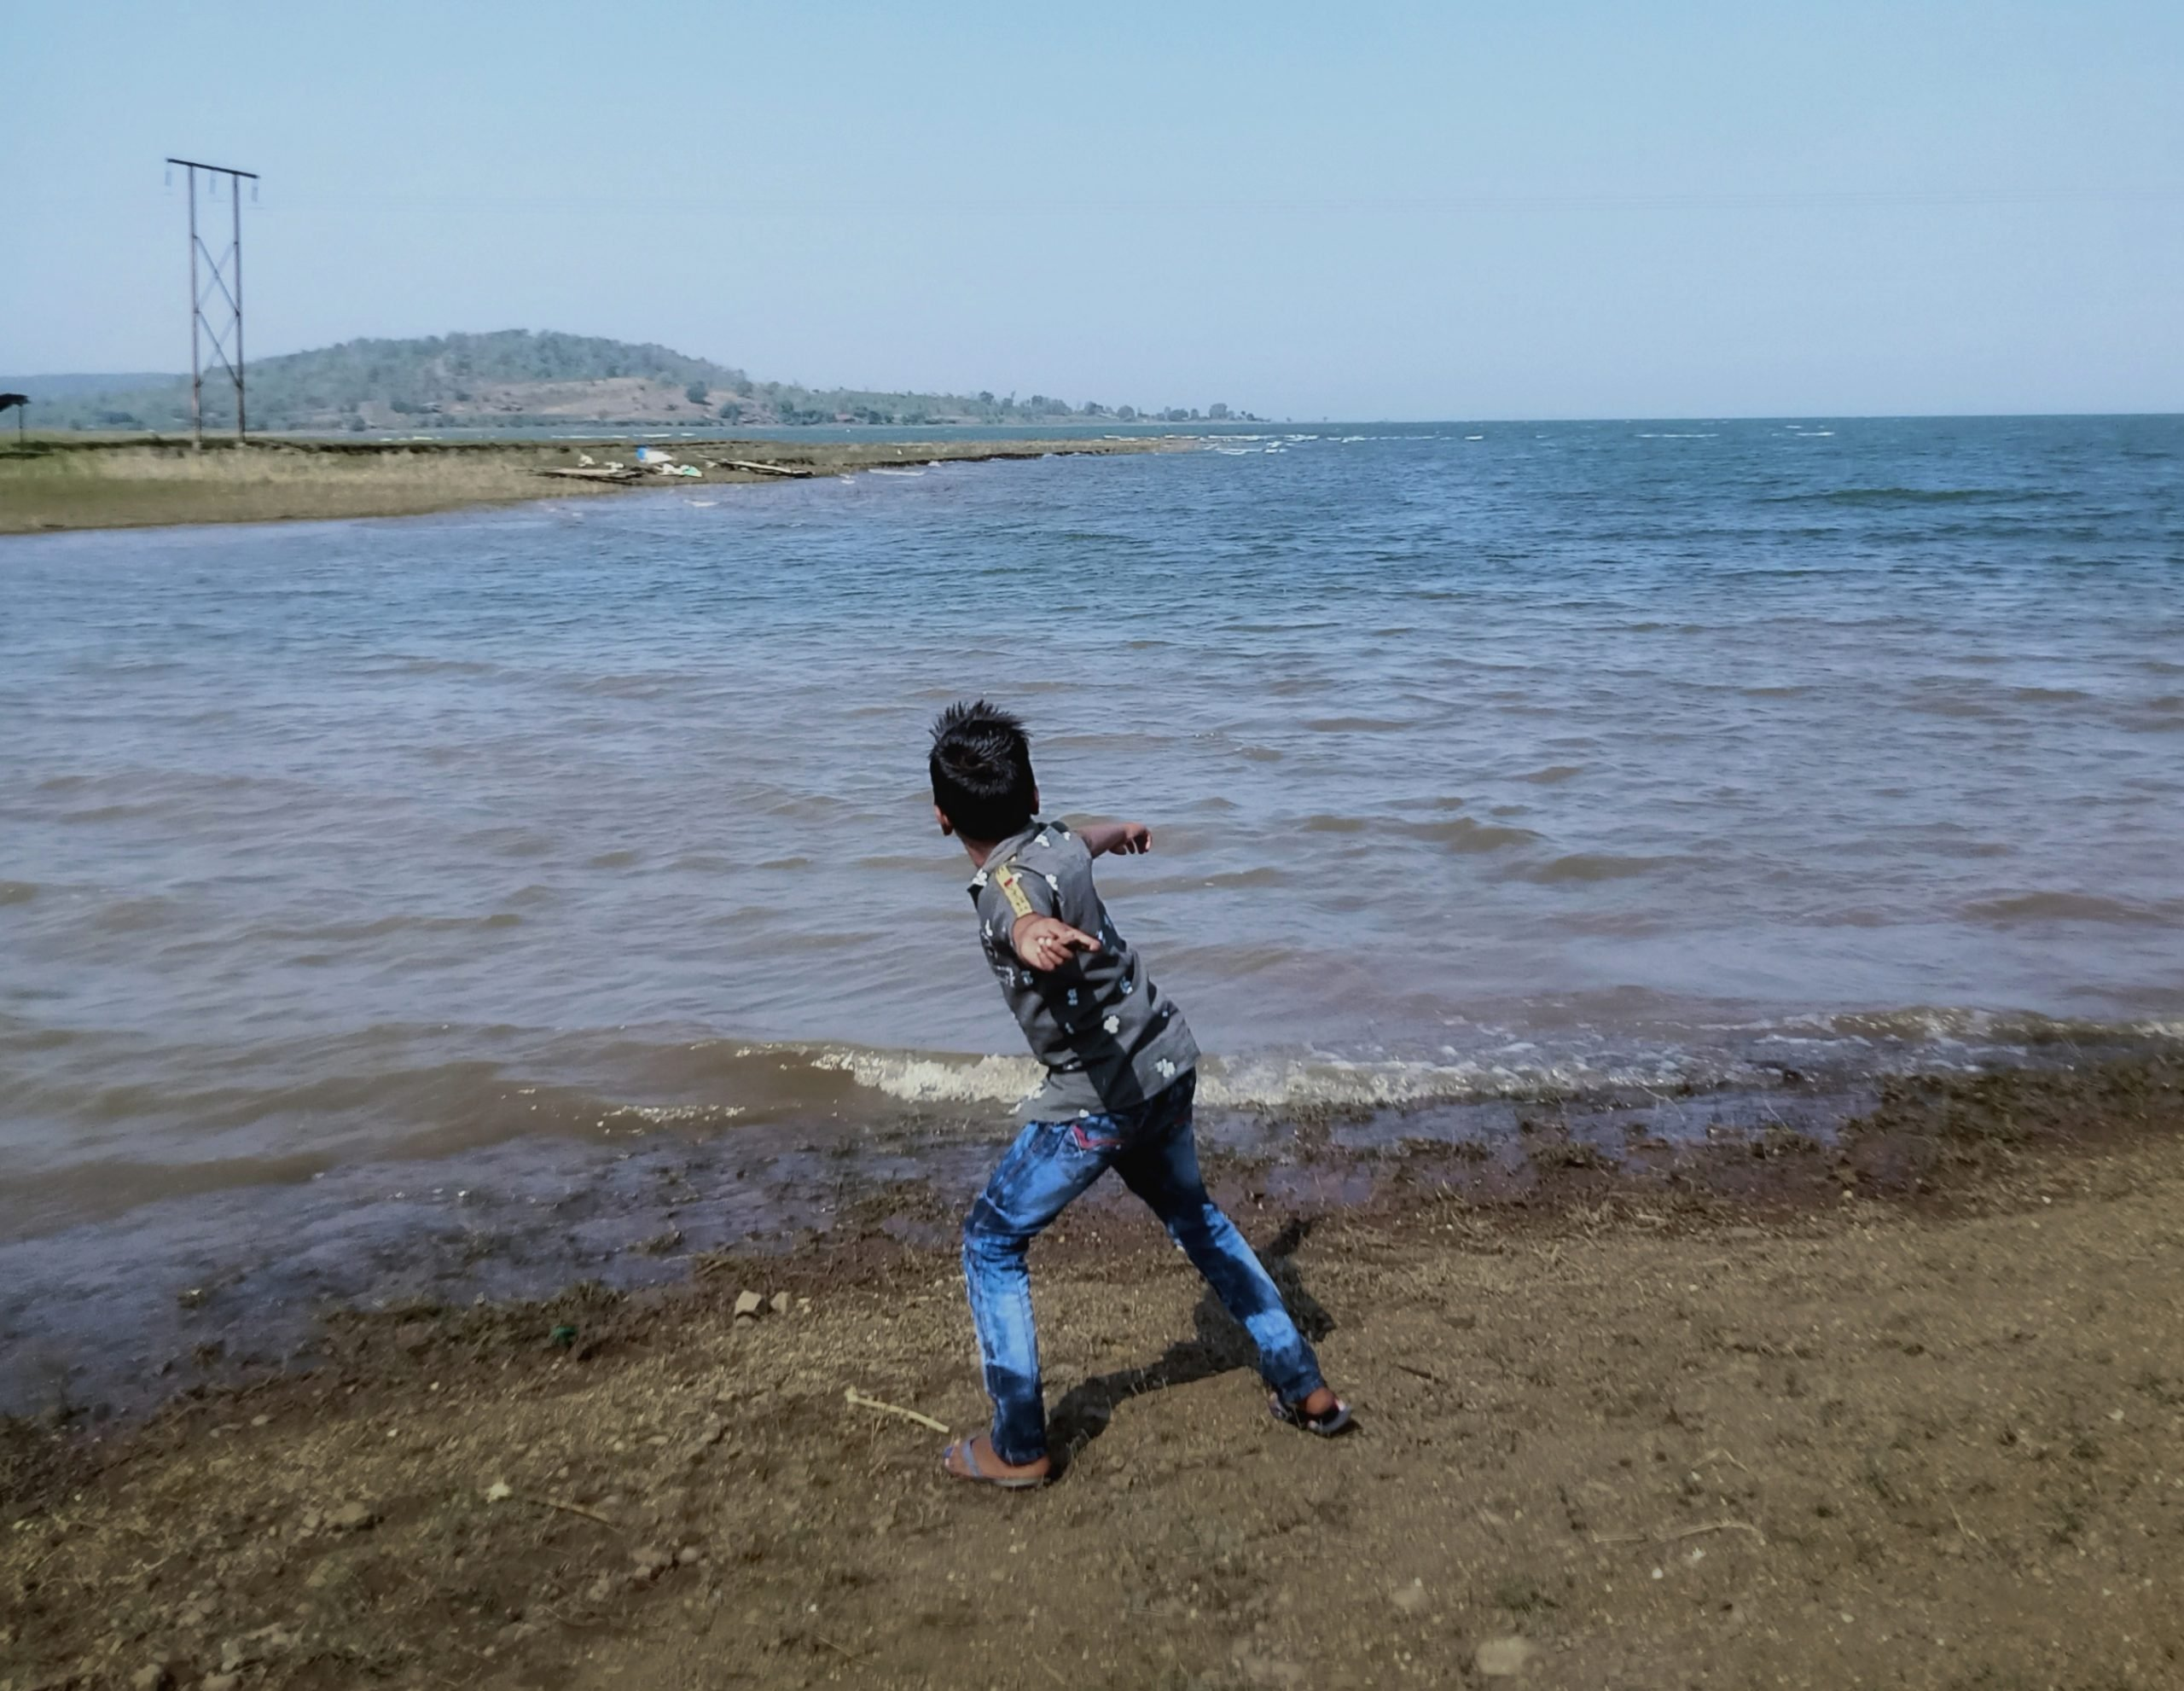 Boy throwing stone in water